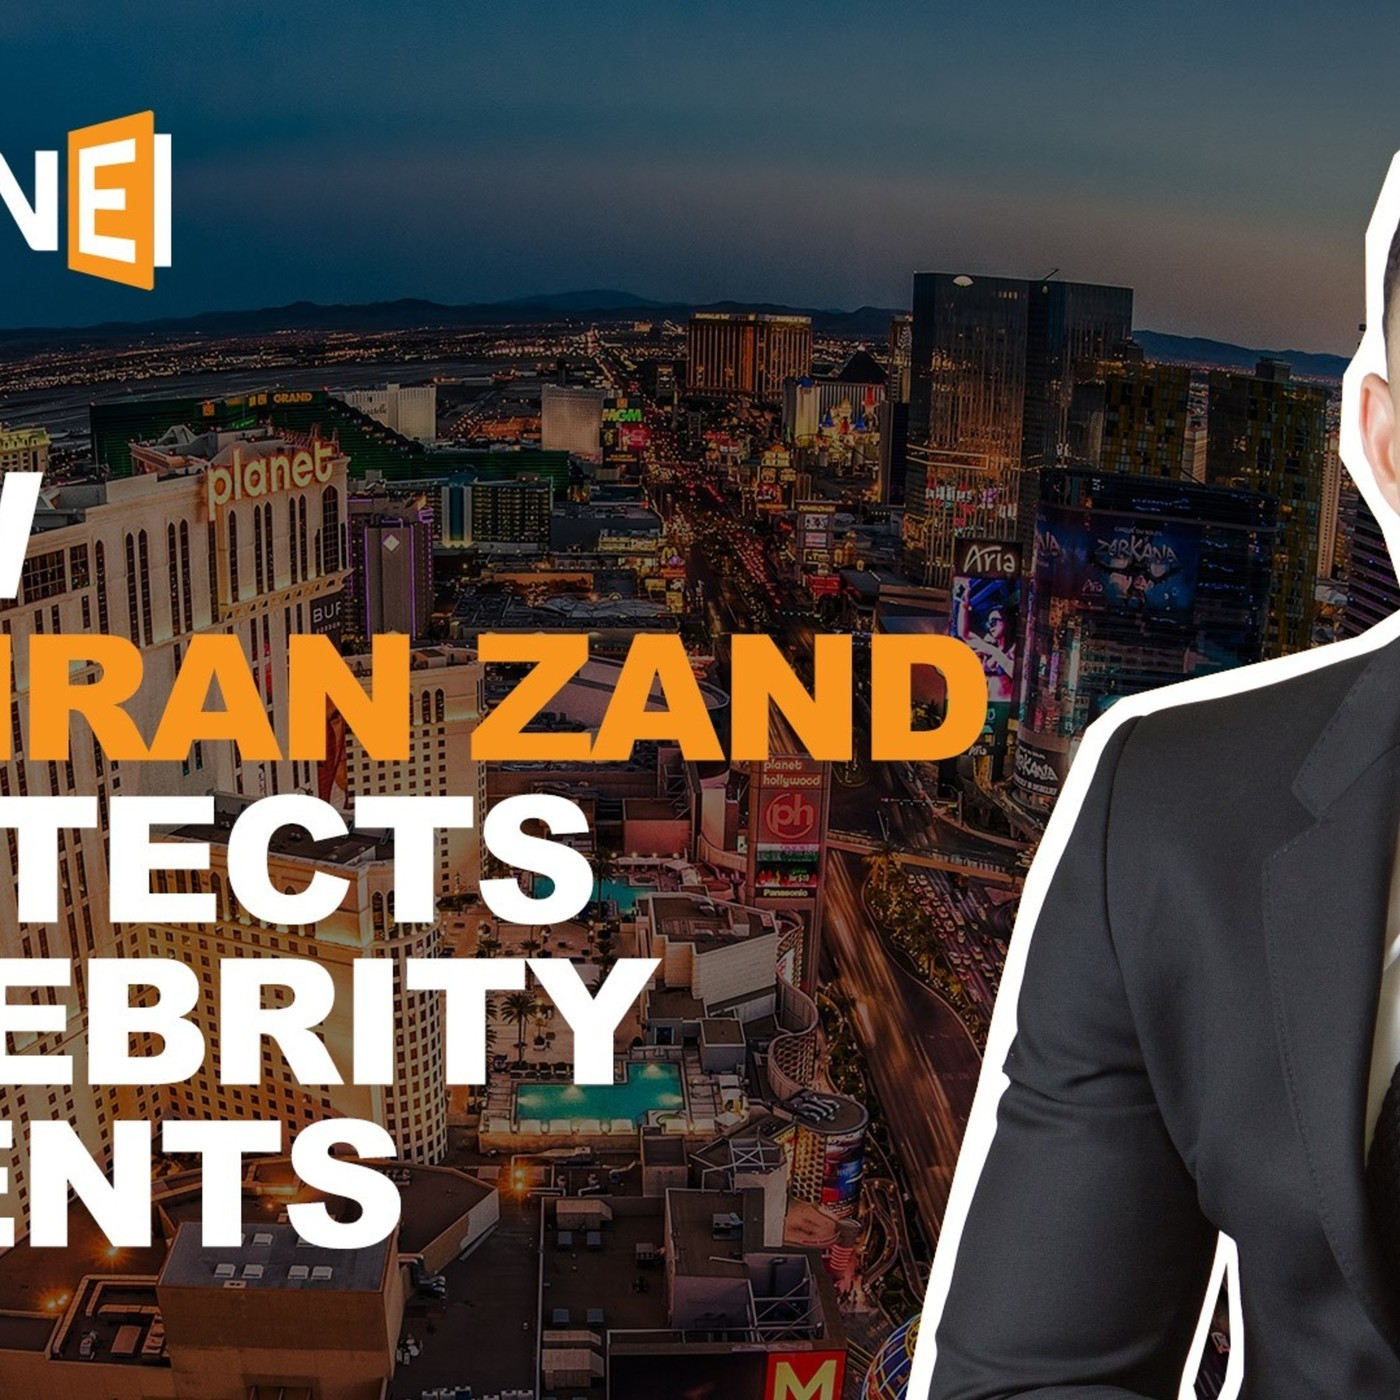 The LineUP Radio protect-celebrity-client-kamran-zand: How To Protect Celebrity Clients With Kamran Zand